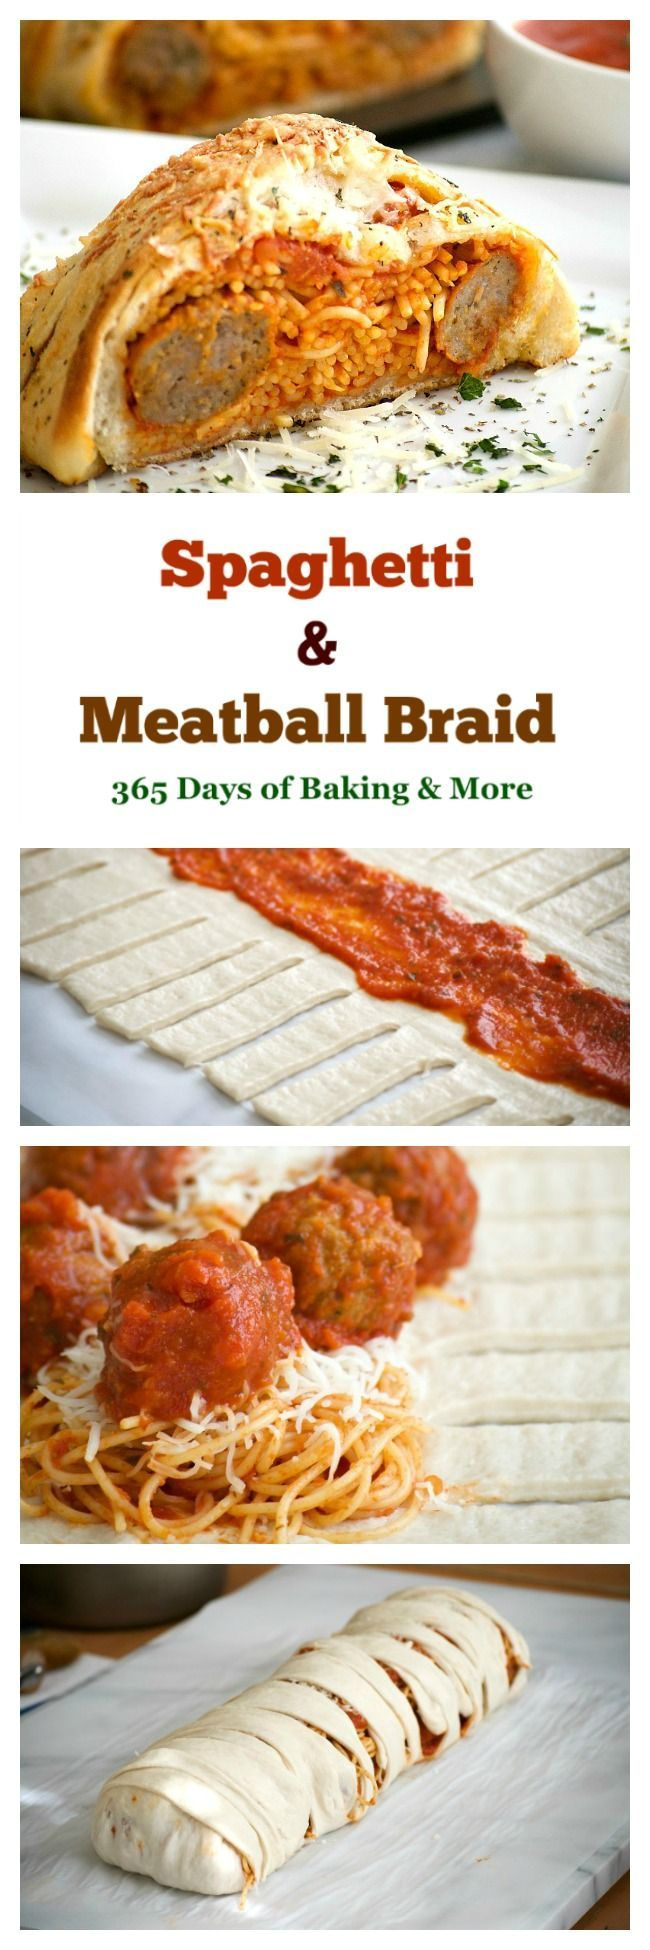 This Spaghetti and Meatball Braid is a new twist on good ol' comfort food - spaghetti and meatballs in pizza dough! It's a fun new way to feed the family.